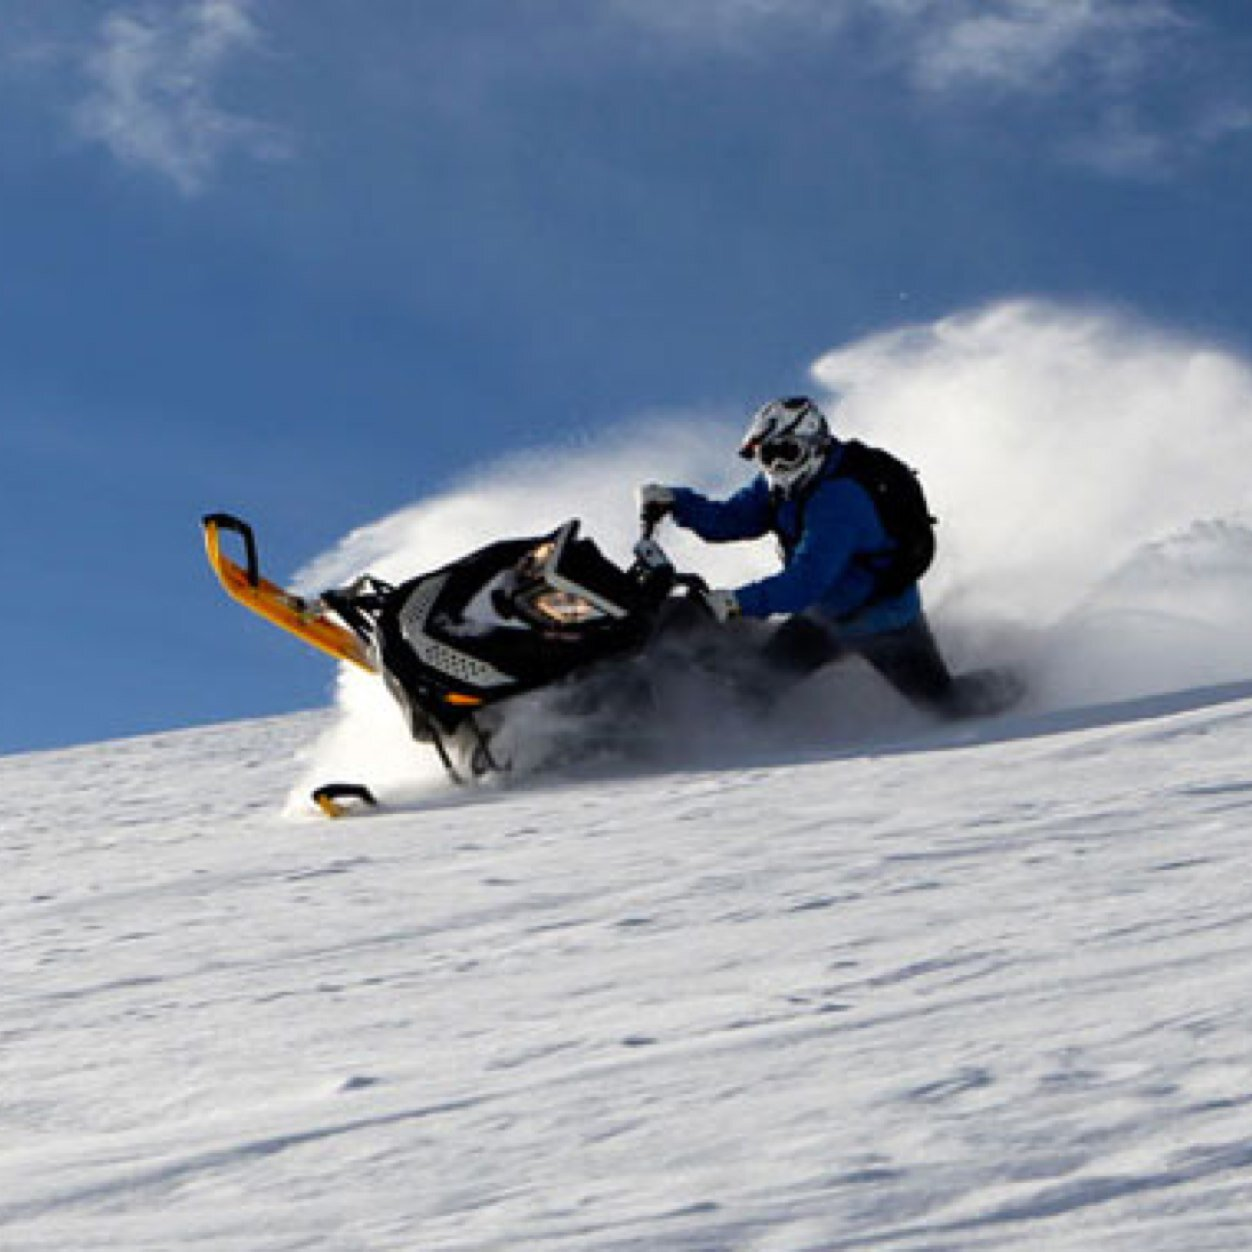 Snowmobile specific avalanche courses brought to you by BCA and Ski-Doo: coming your way for free this fall.